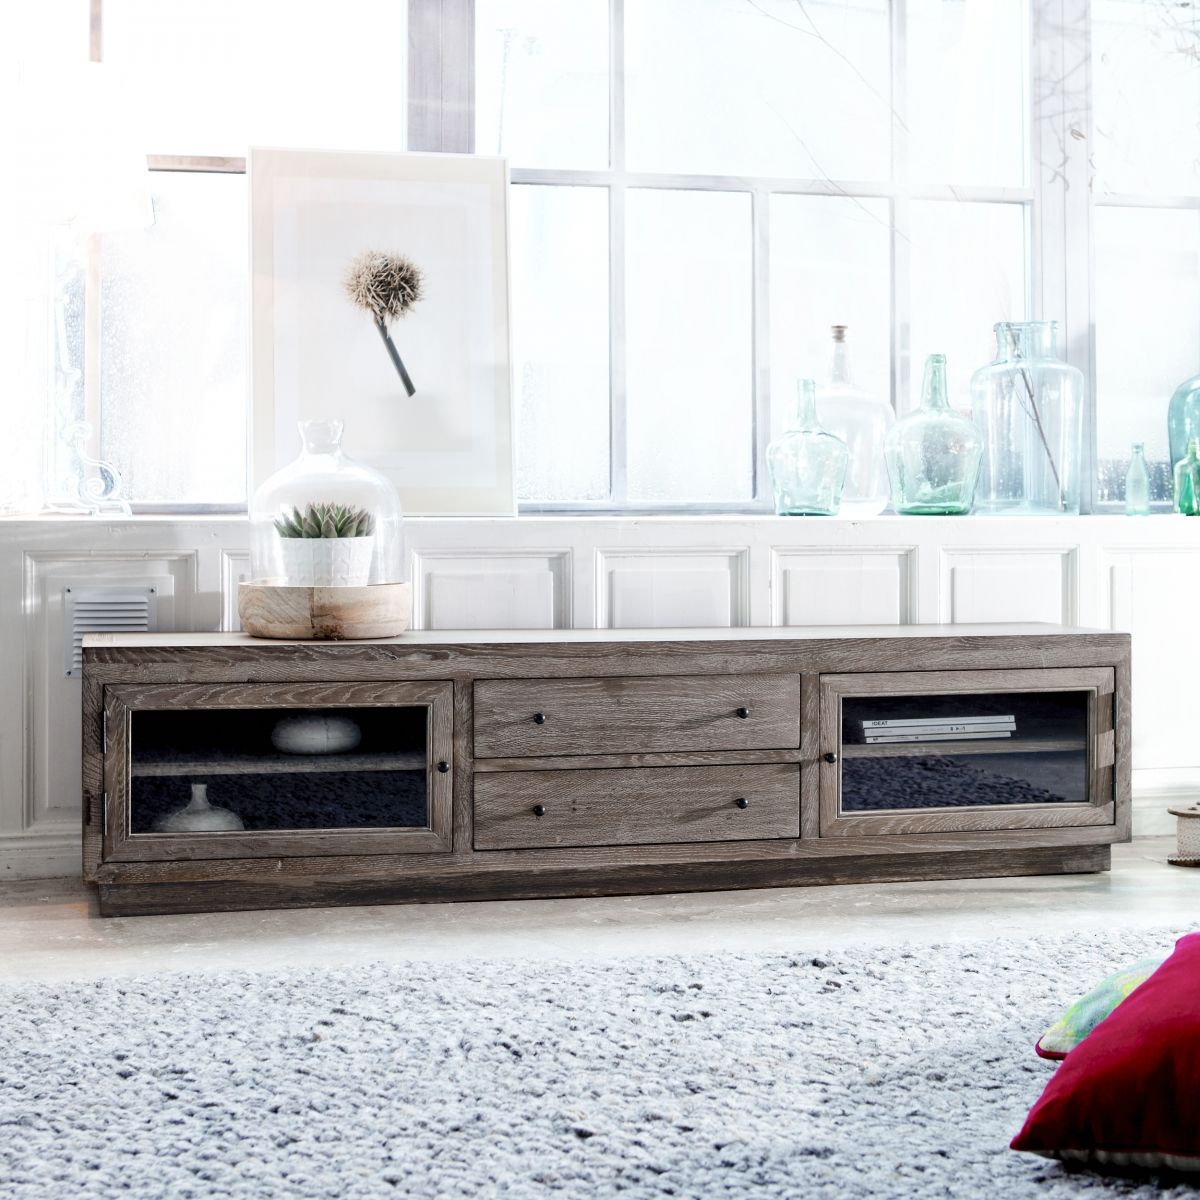 Oak Tv Stand Pablo Tv Stand Tikamoon Tv Unit Pinterest # Meuble Tv A La Mode